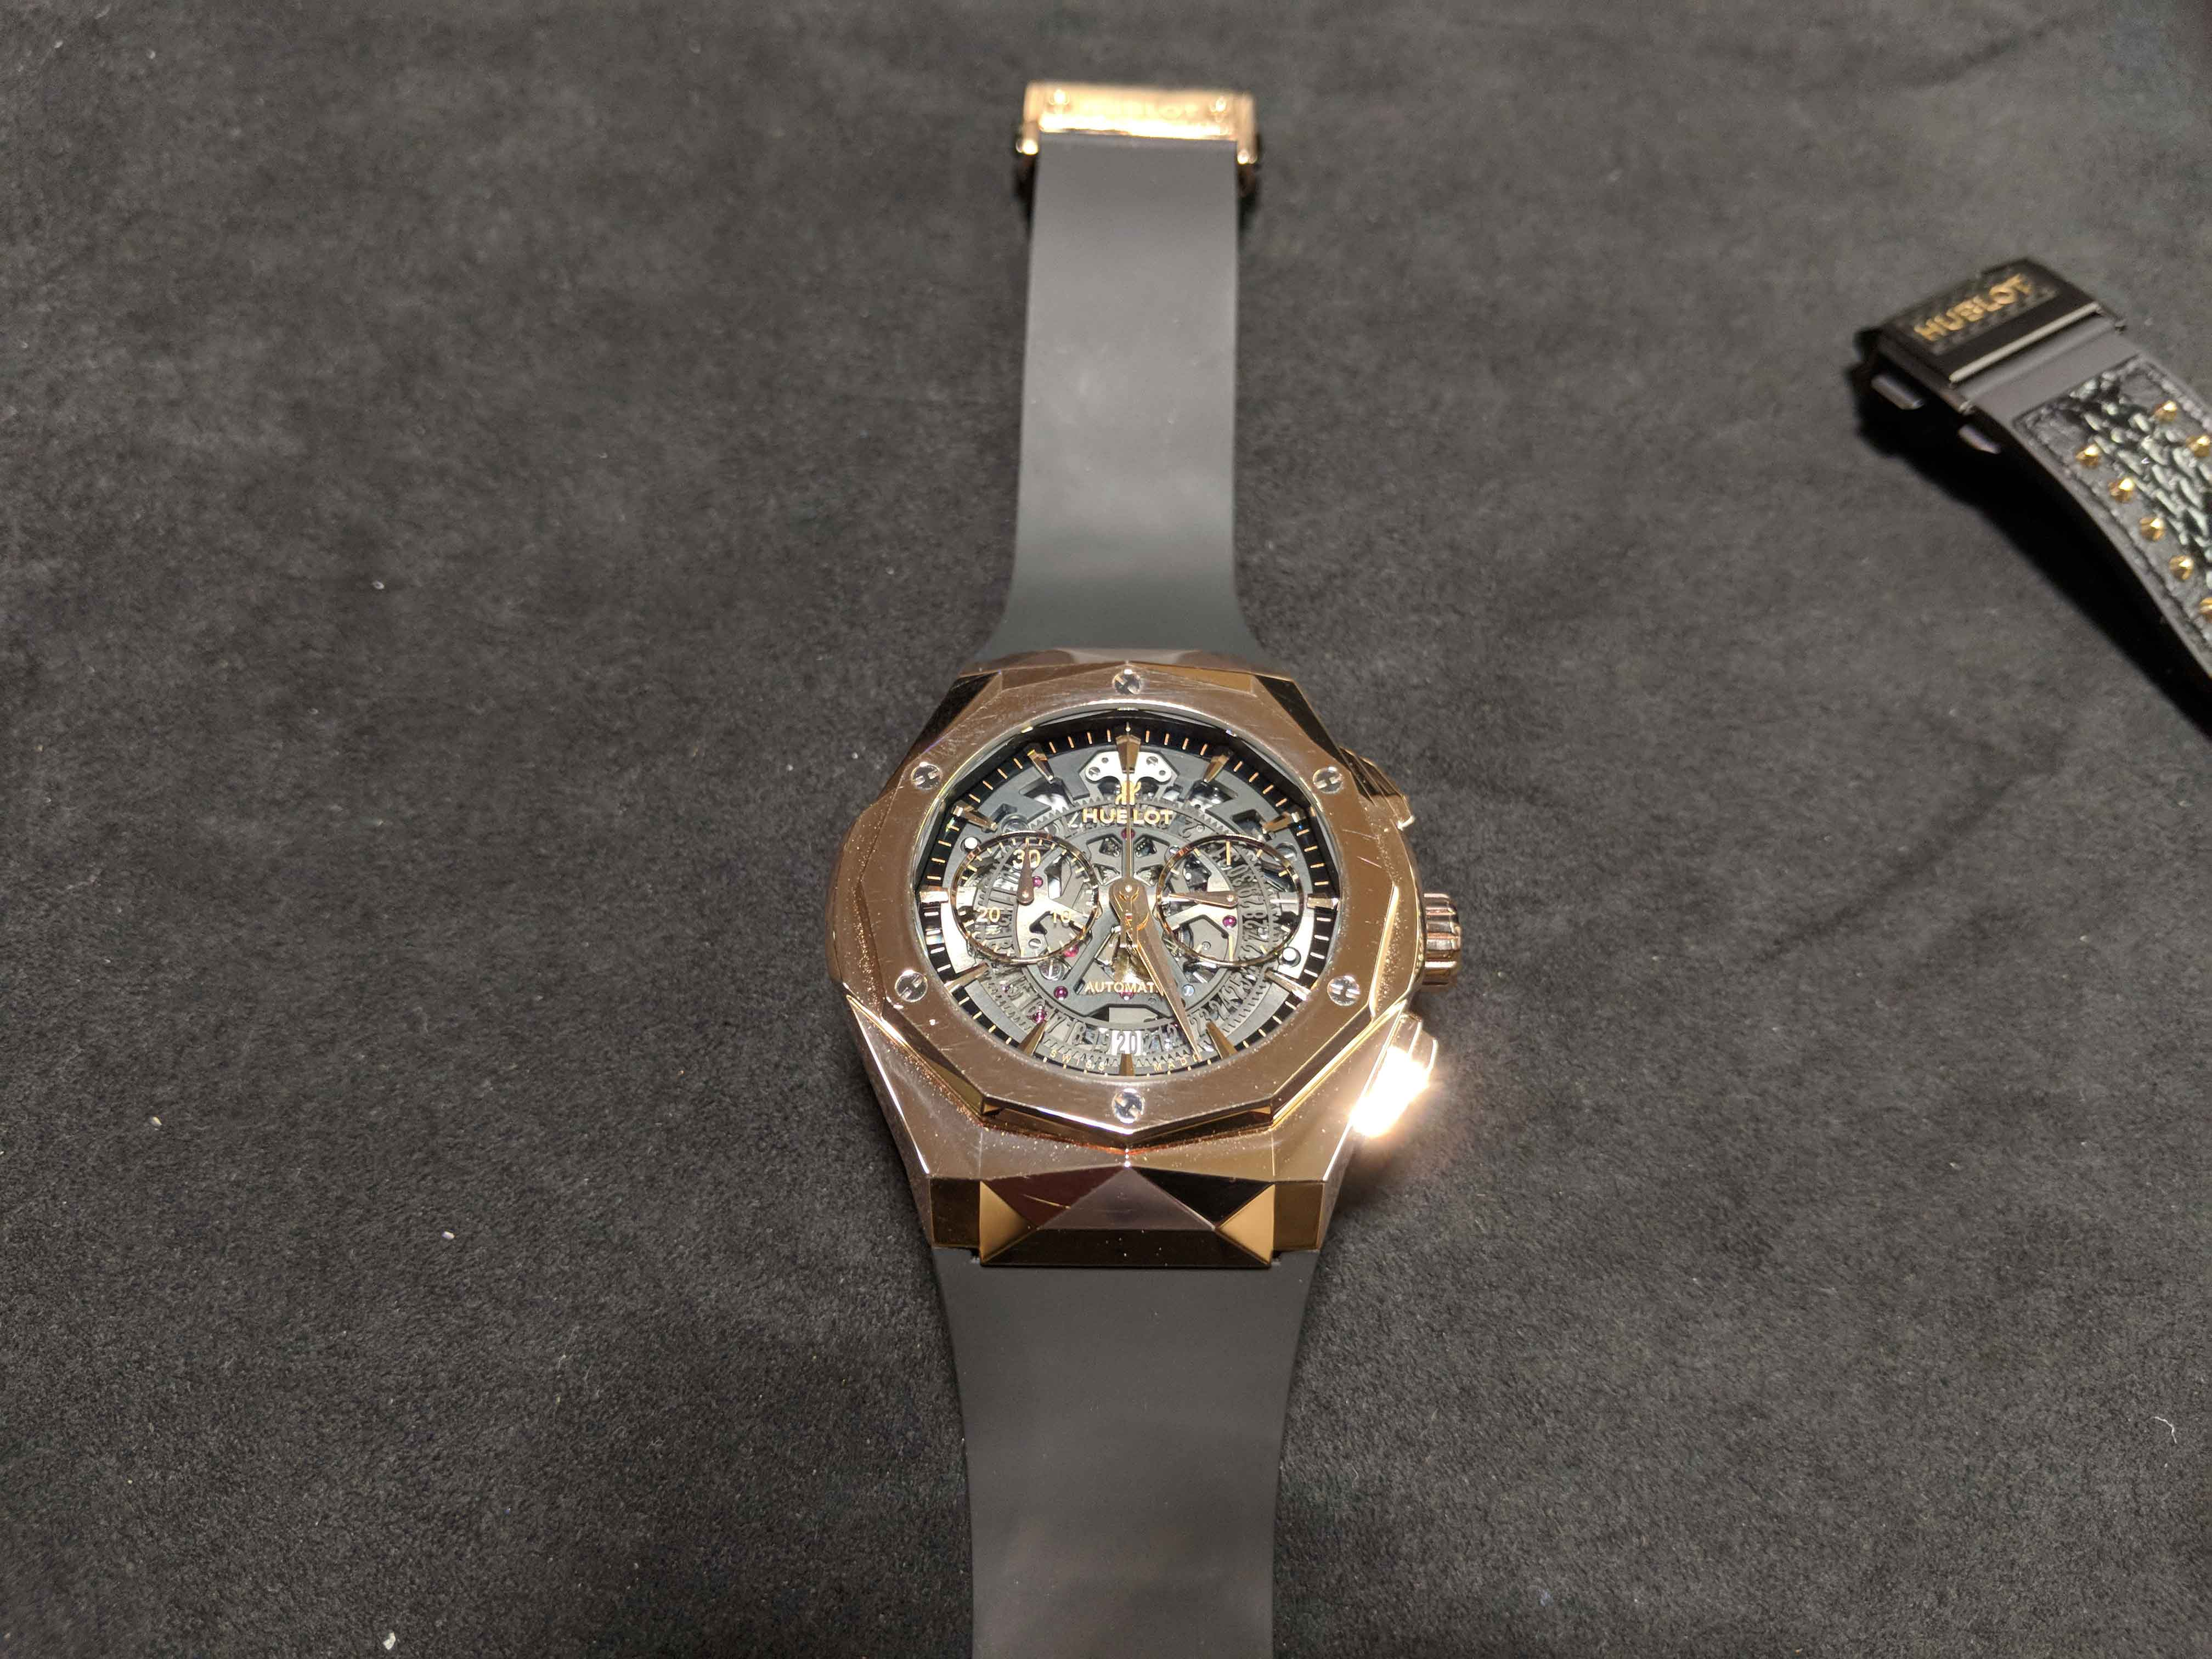 Timezone Hublot 187 Basel 2018 Up Close With The Hublot